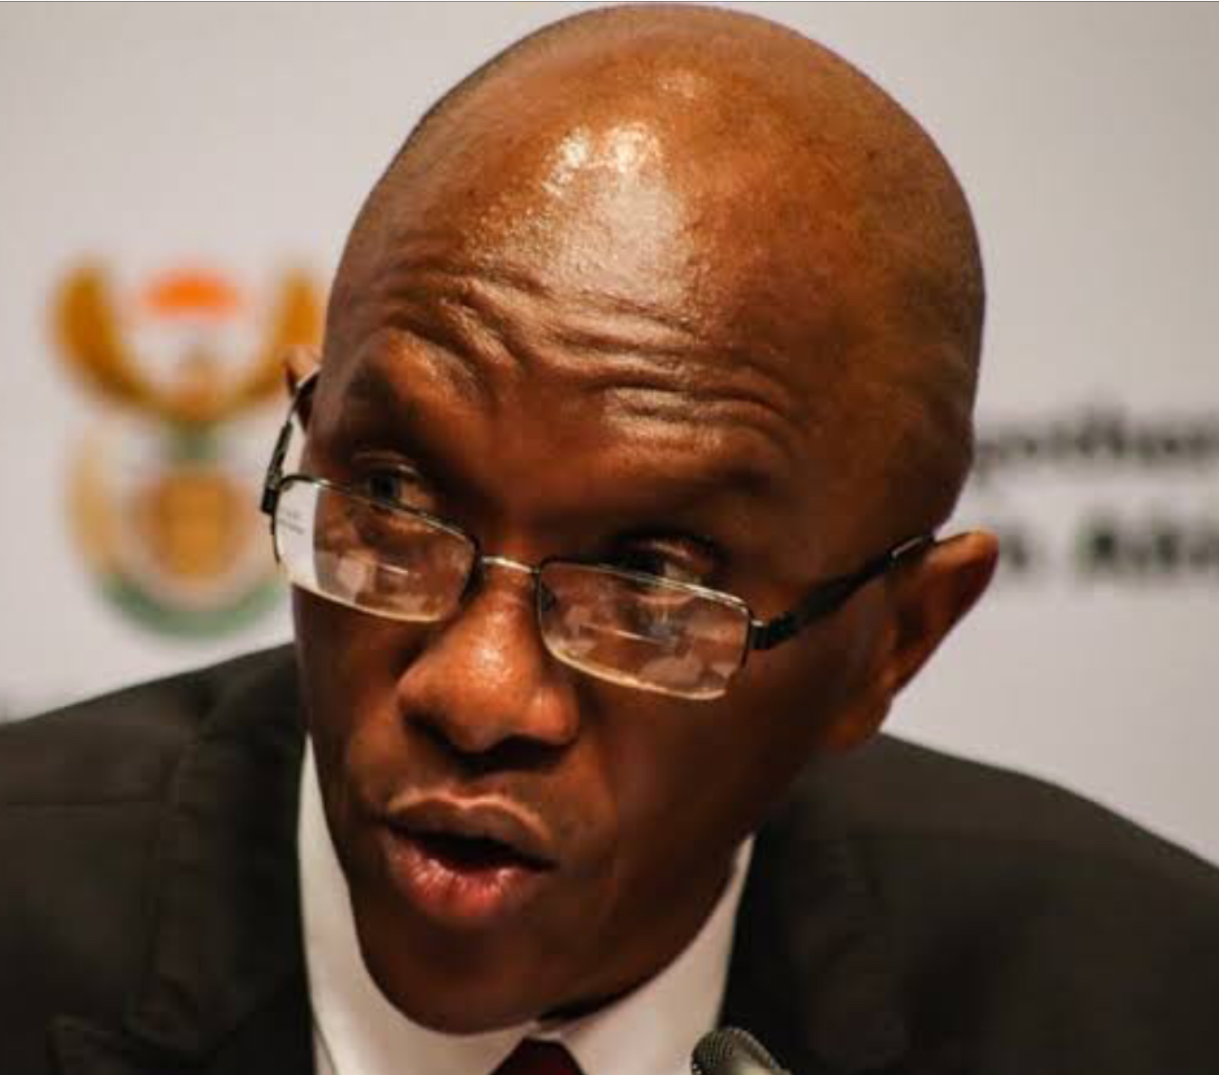 South Africa's outgoing Auditor General Kimi Makwetu dies